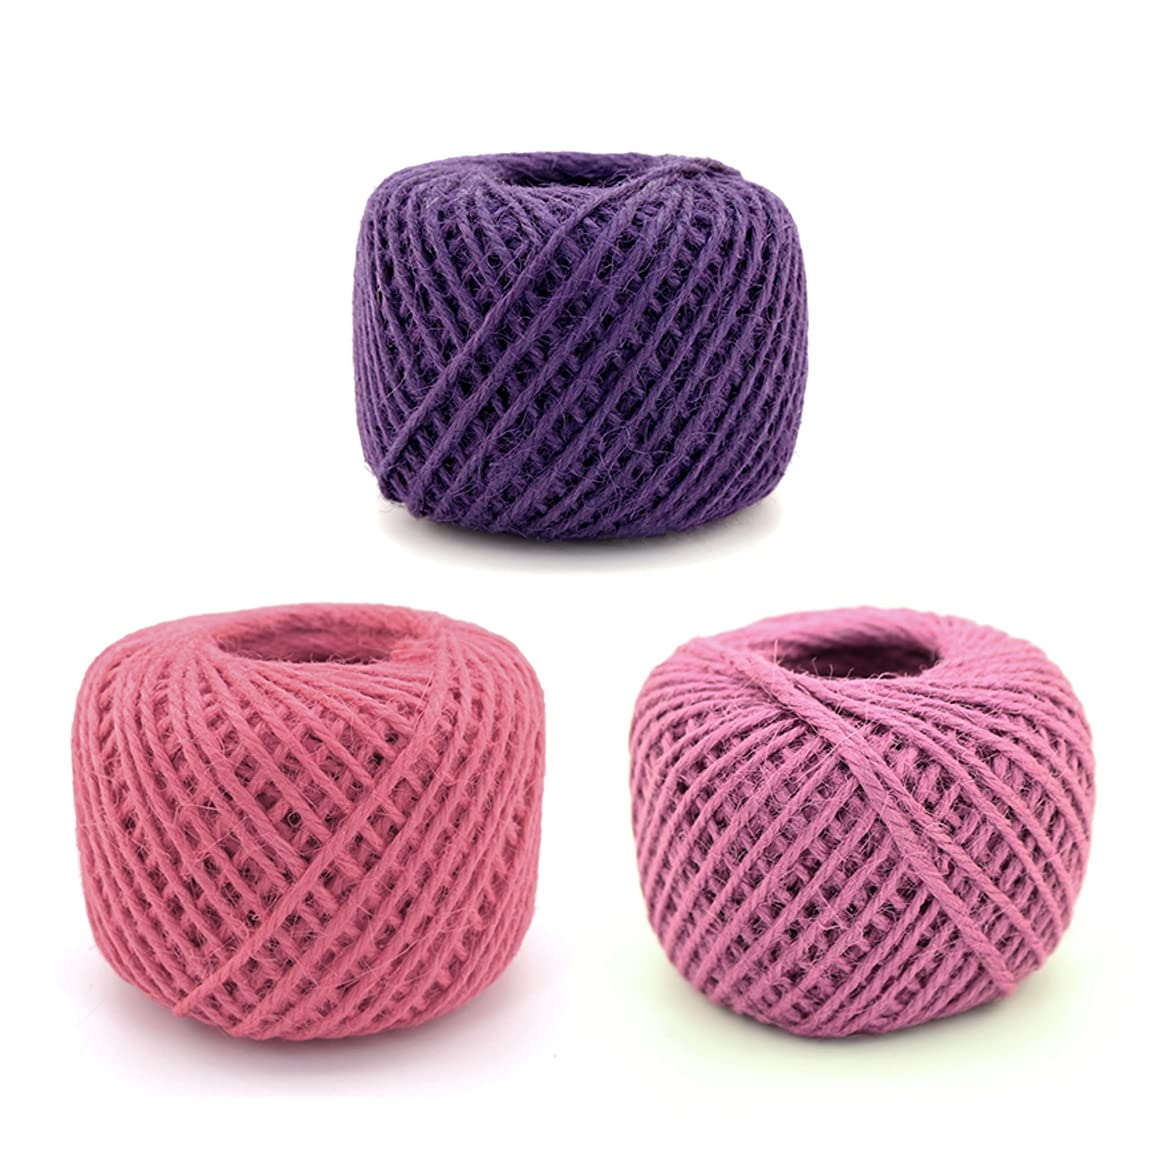 BambooMN 675 Ft, 2mm Crafty Jute Twine String Hemp Jute for Artworks, DIY Crafts, Gift Wrapping, Picture Display and Embellishments, 3 Balls Shades of Purple